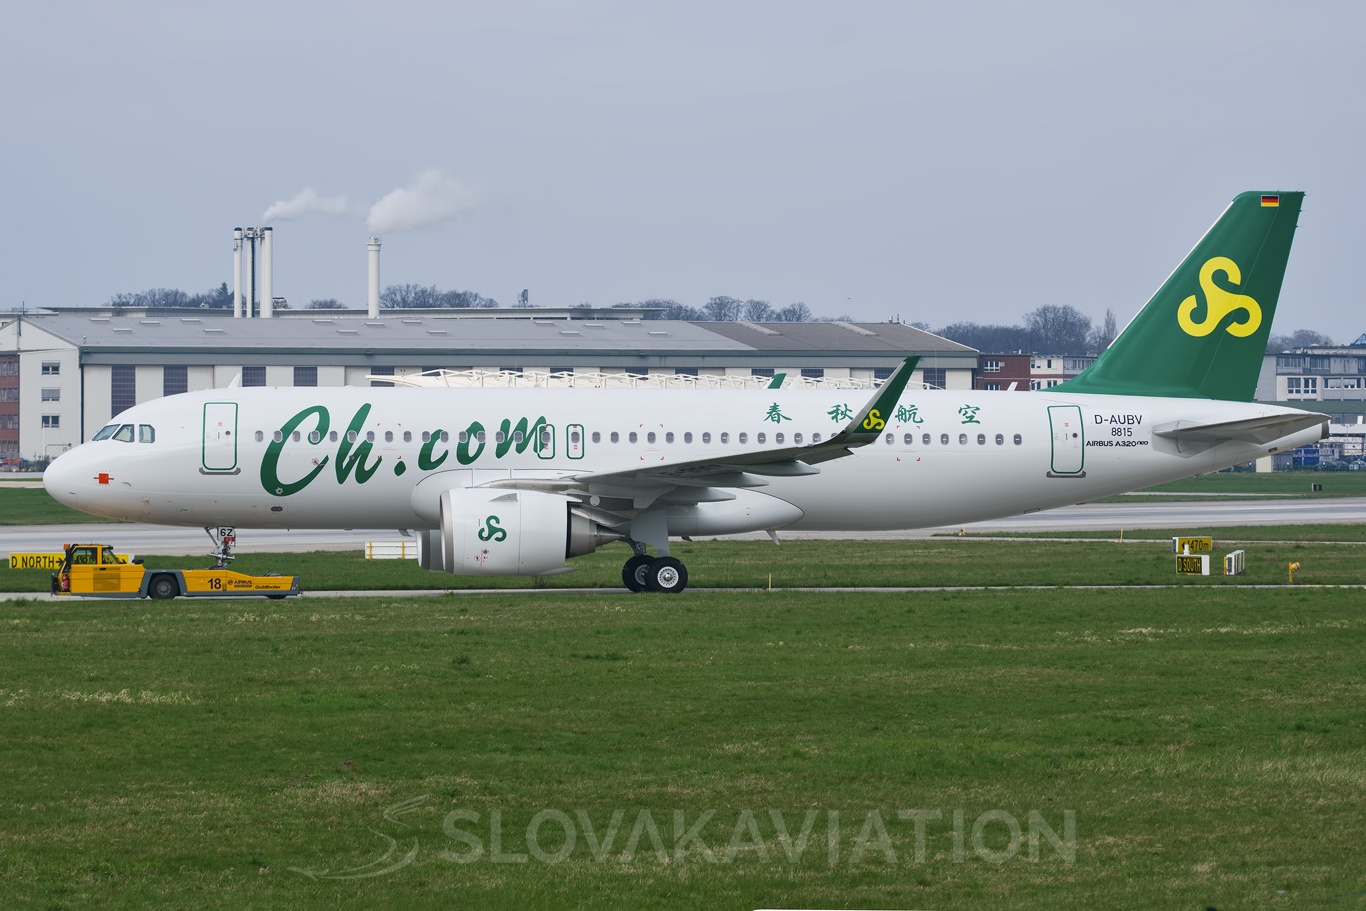 Spring Airlines Airbus A320 D-AUBV